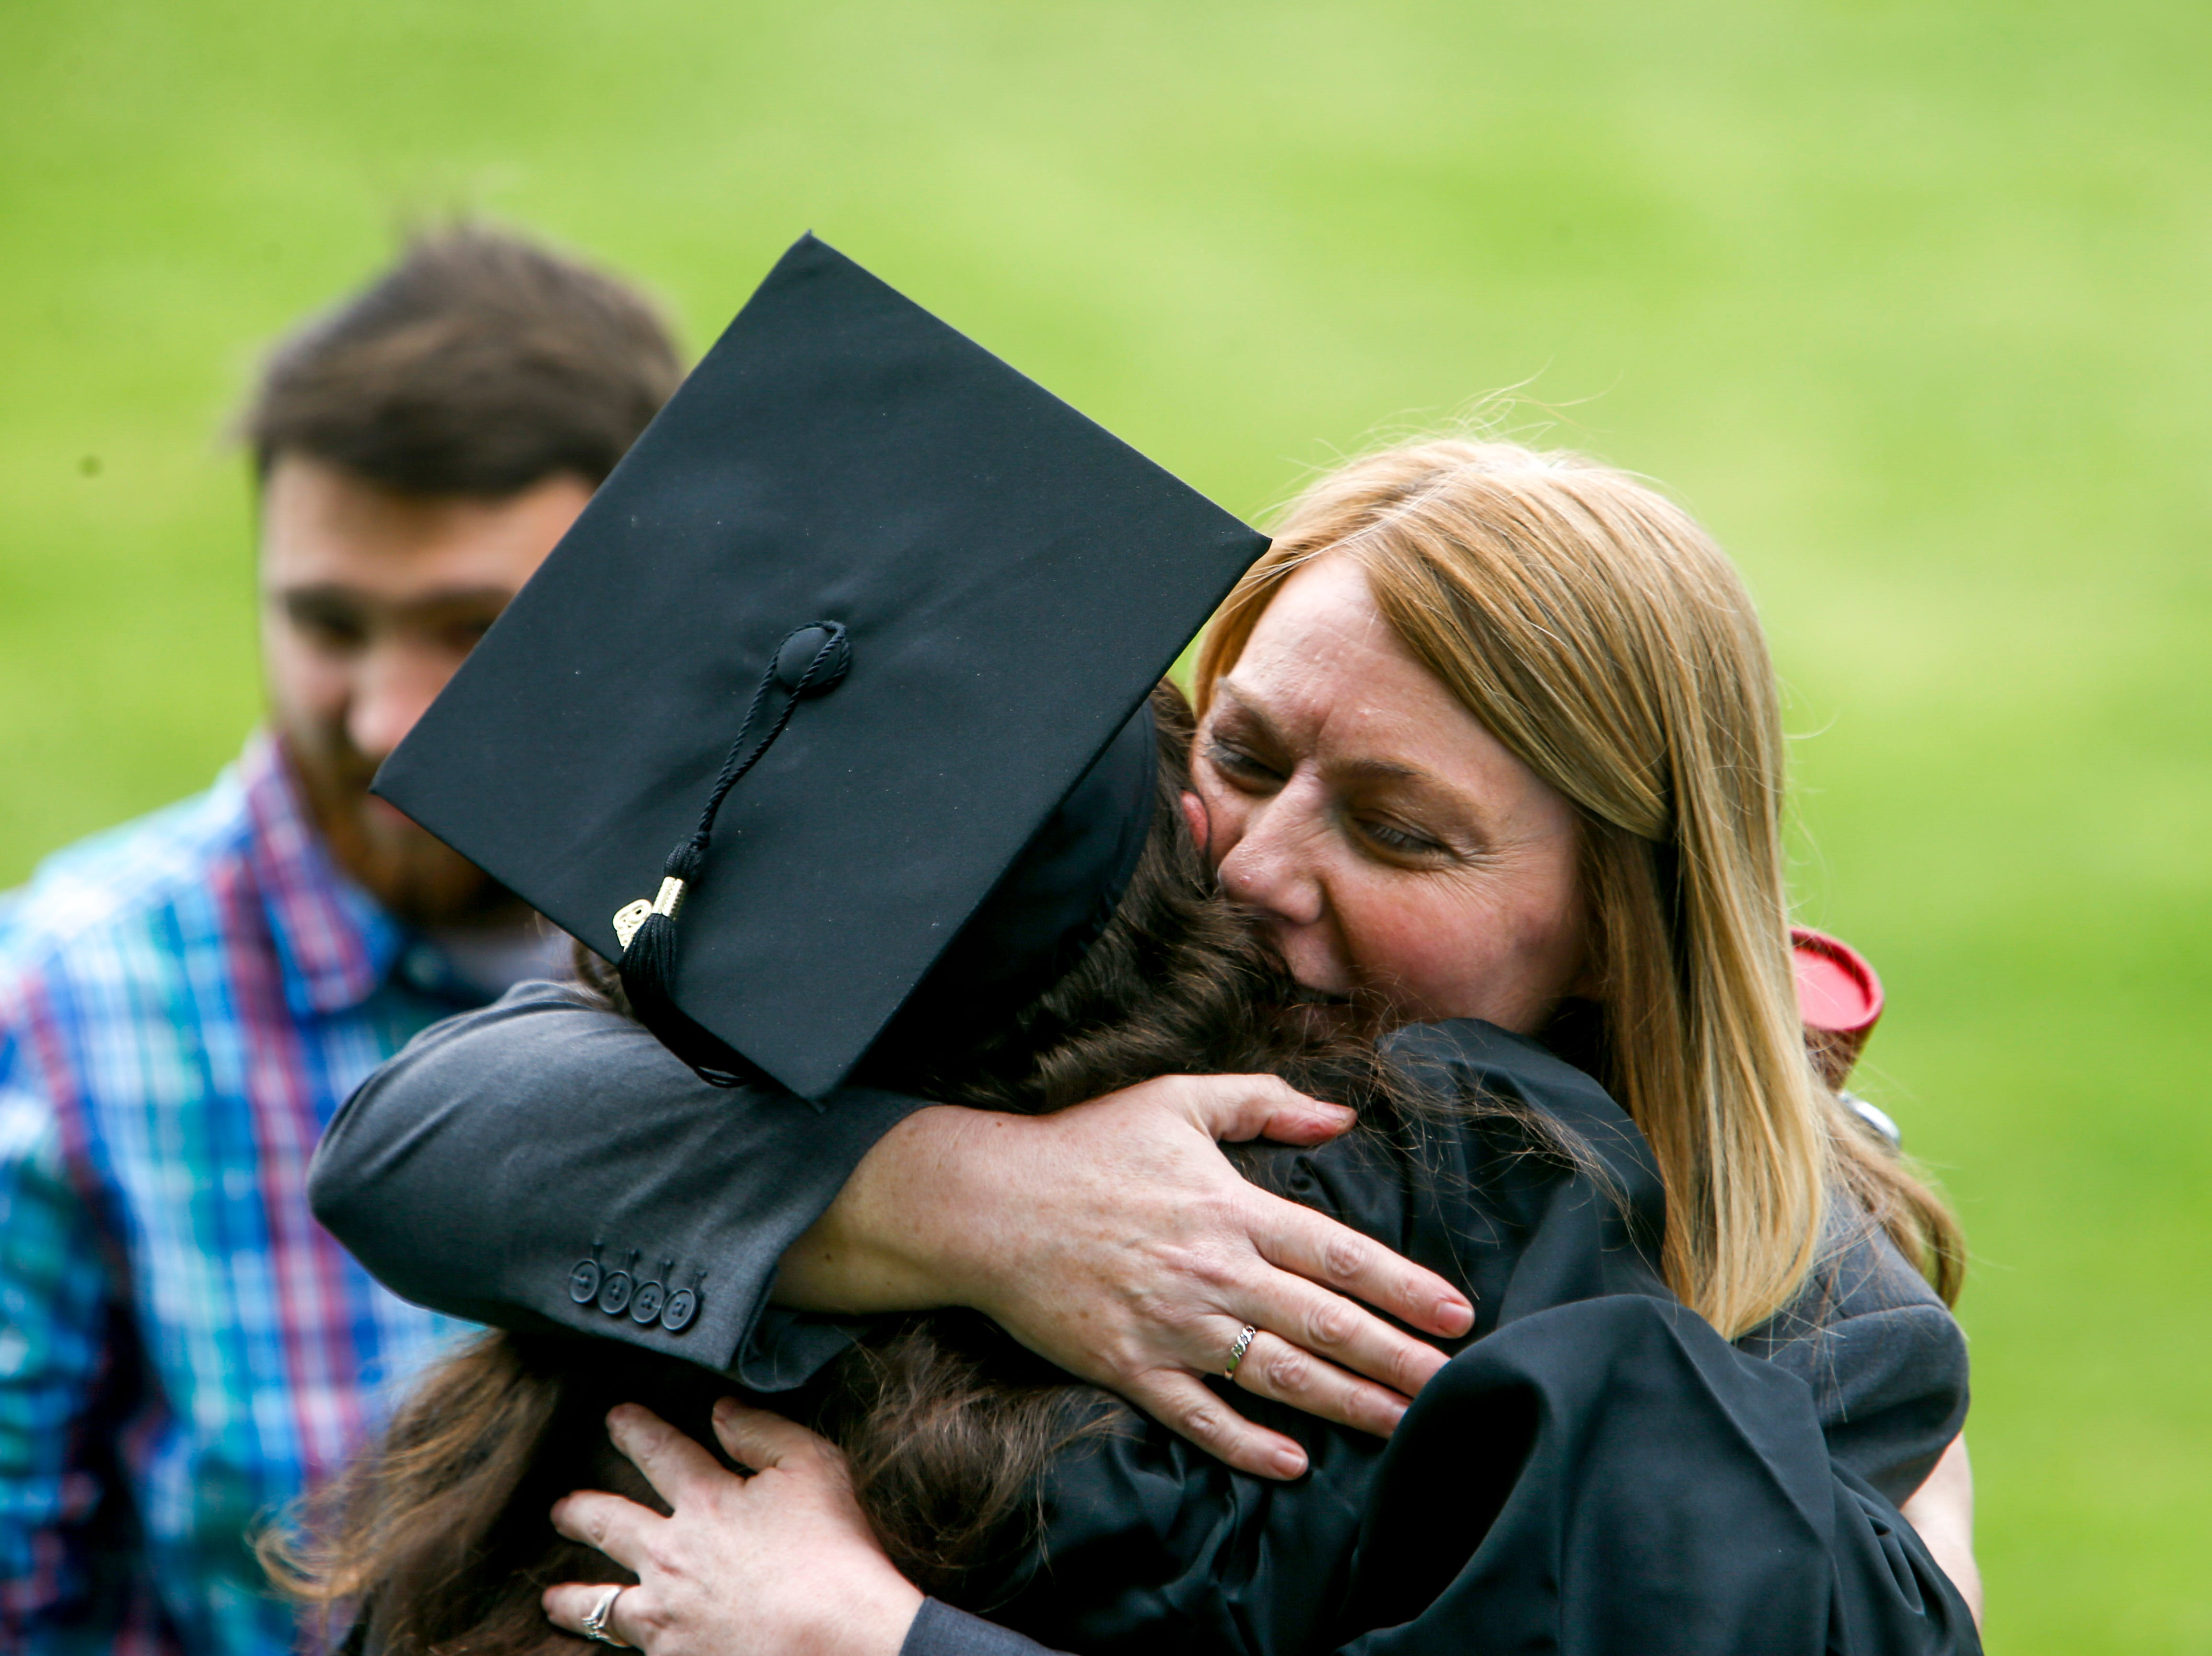 Students celebrate with family and friends after graduating at the Austin Peay spring commencement ceremony 2019 for College of Business and College of STEM at Winfield Dunn Center in Clarksville, Tenn., on Friday, May 3, 2019.